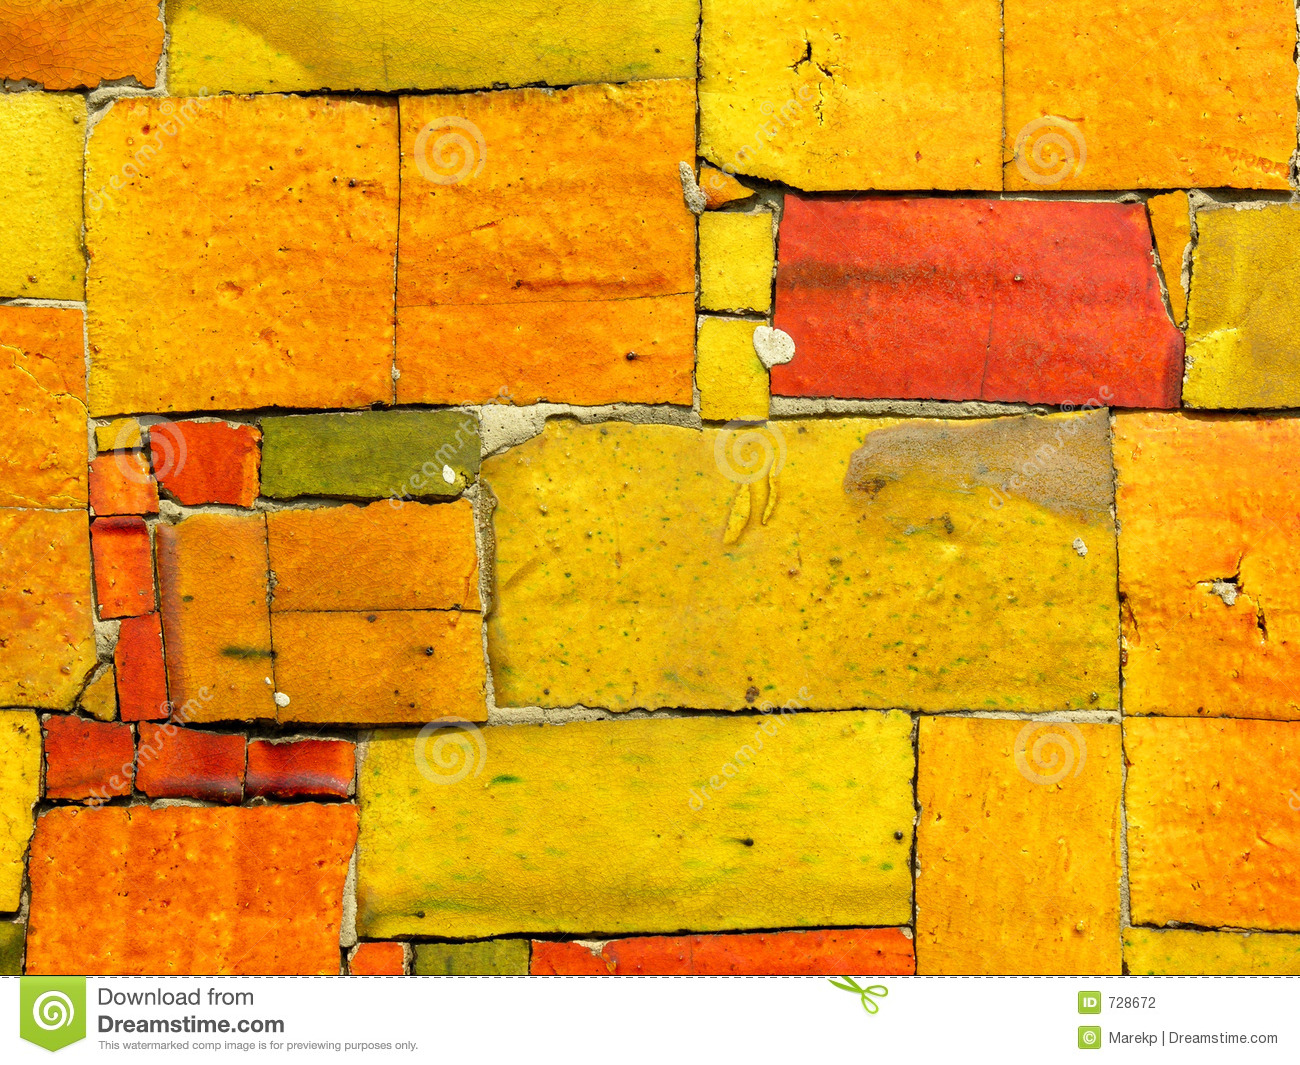 Cool 12X24 Ceramic Floor Tile Small 16X16 Ceiling Tiles Rectangular 2X2 Ceiling Tile 2X2 Ceiling Tiles Young 3 By 6 Subway Tile Blue3 X 6 Glass Subway Tile Yellow Tiles Mosaic   Random Pattern Stock Photo   Image Of Ceramic ..